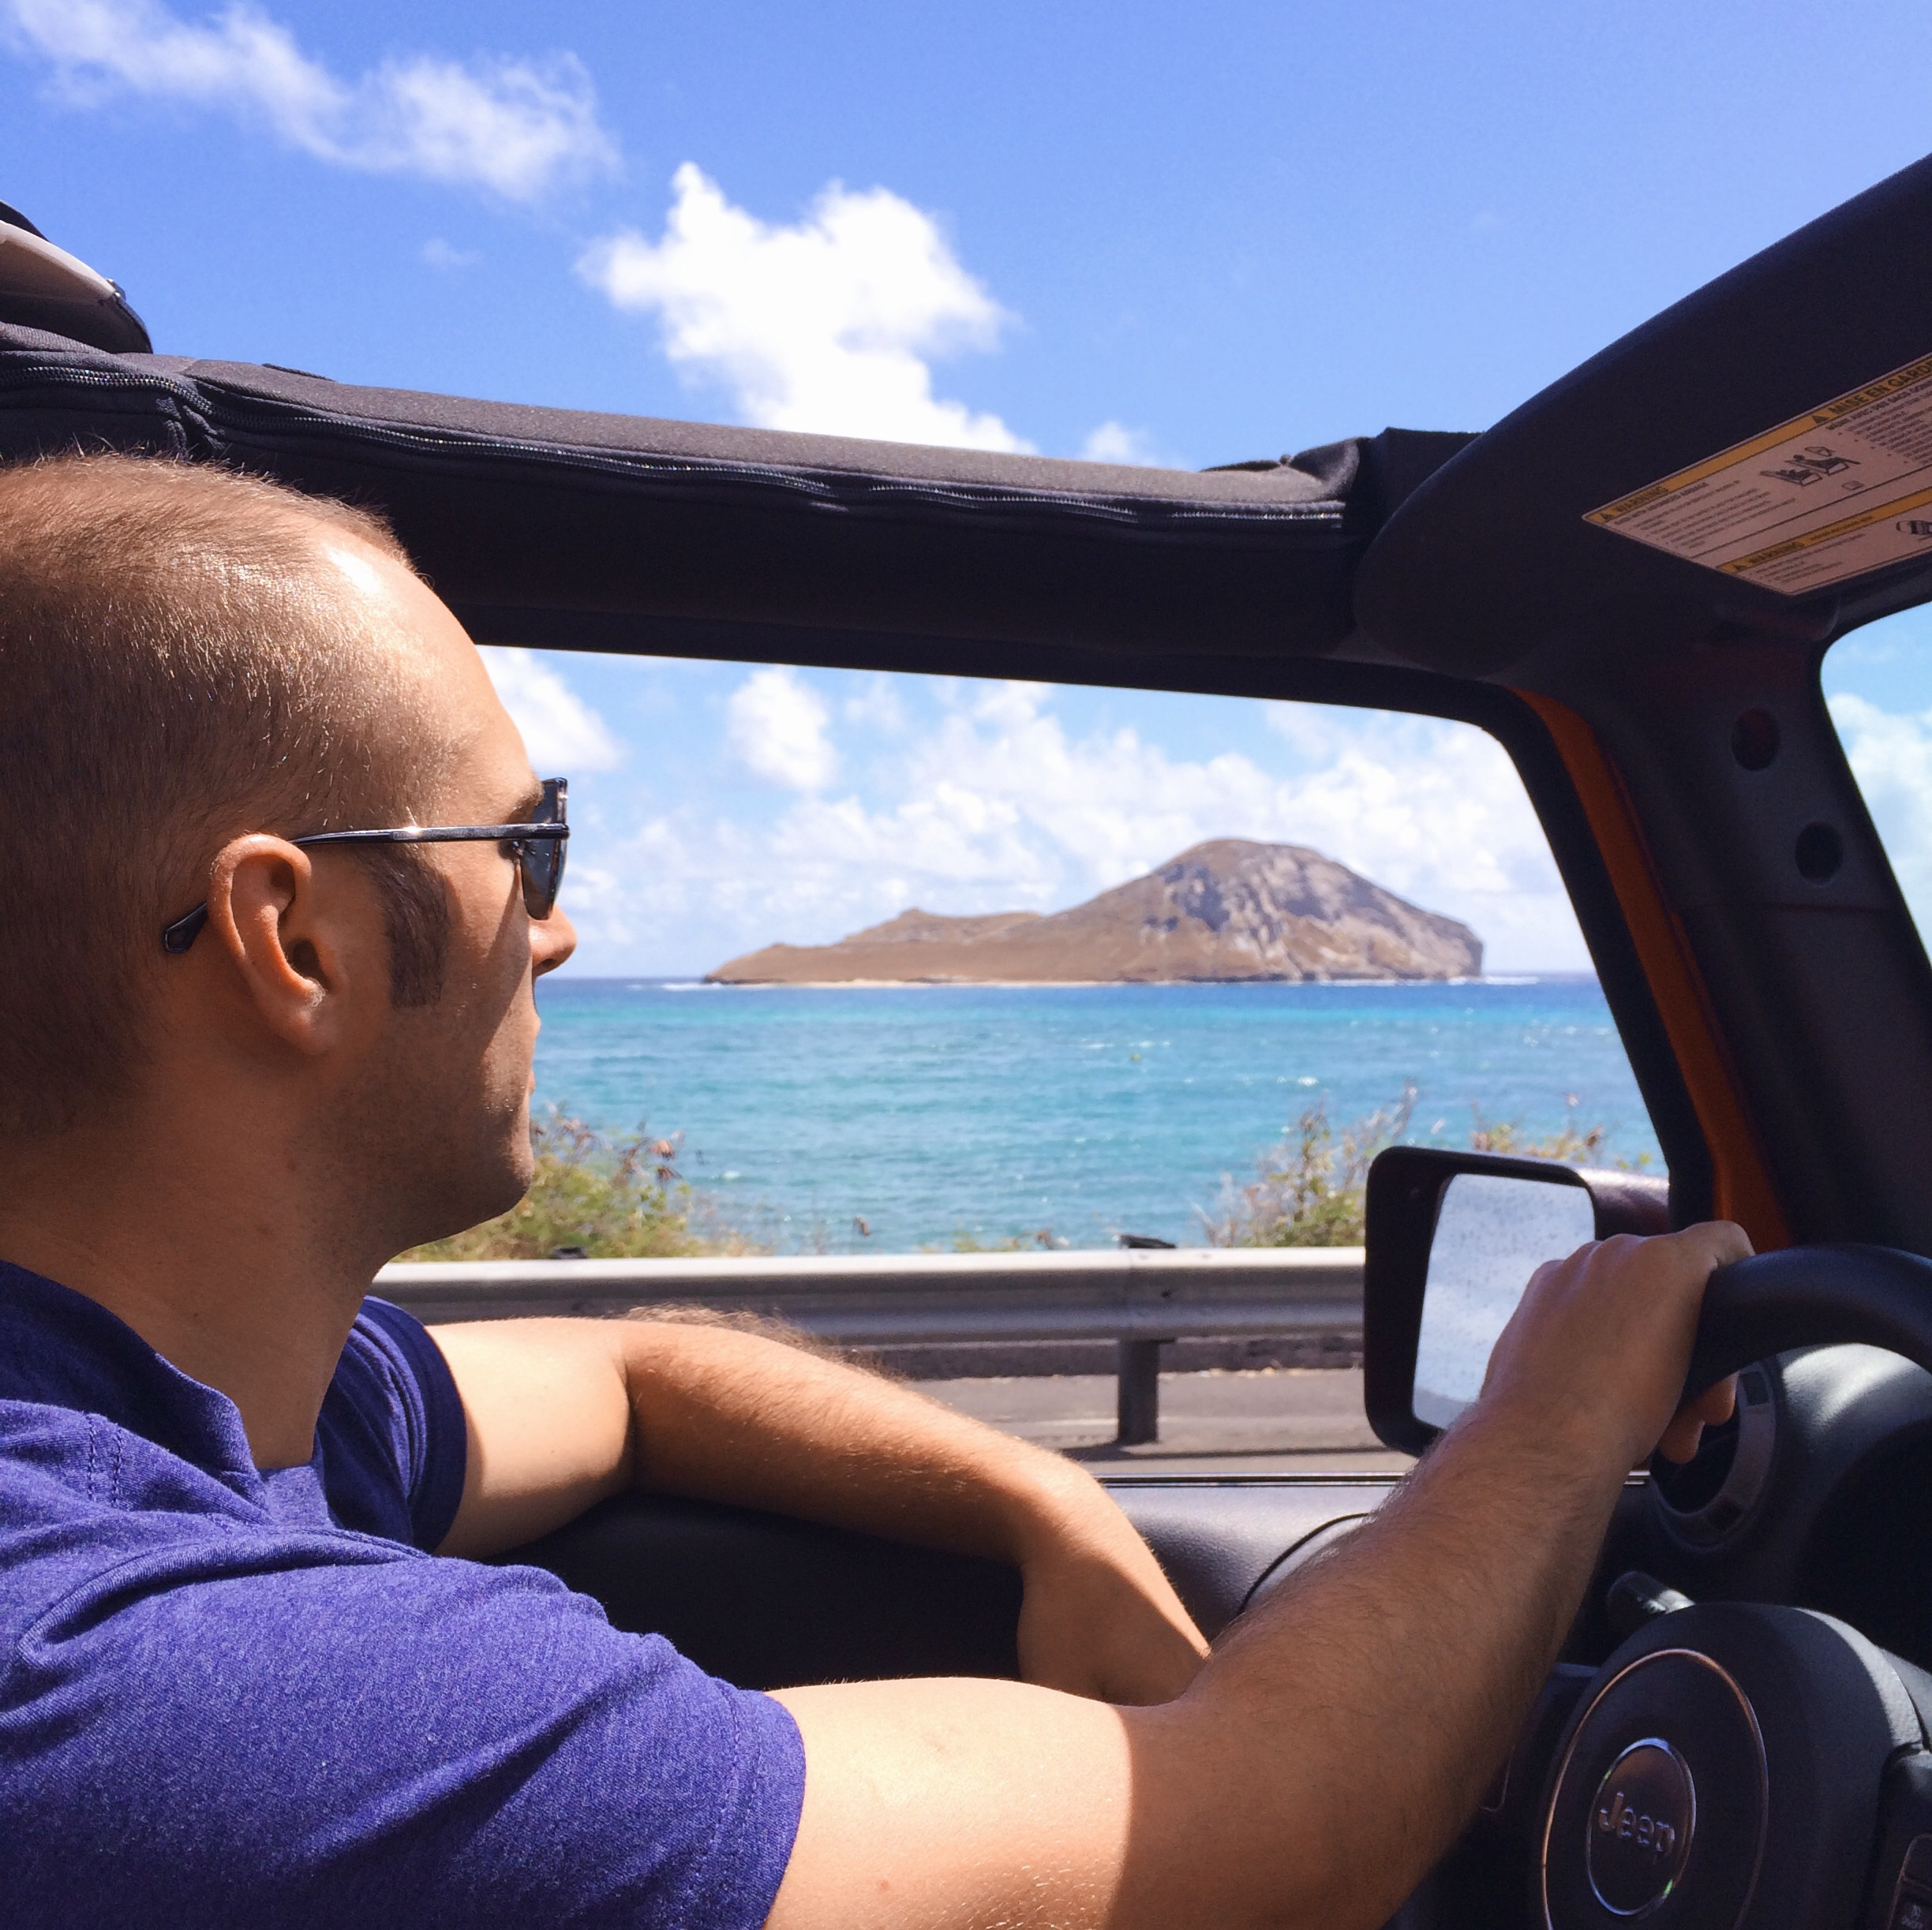 Cruising in the Jeep on our last full day in Hawaii.